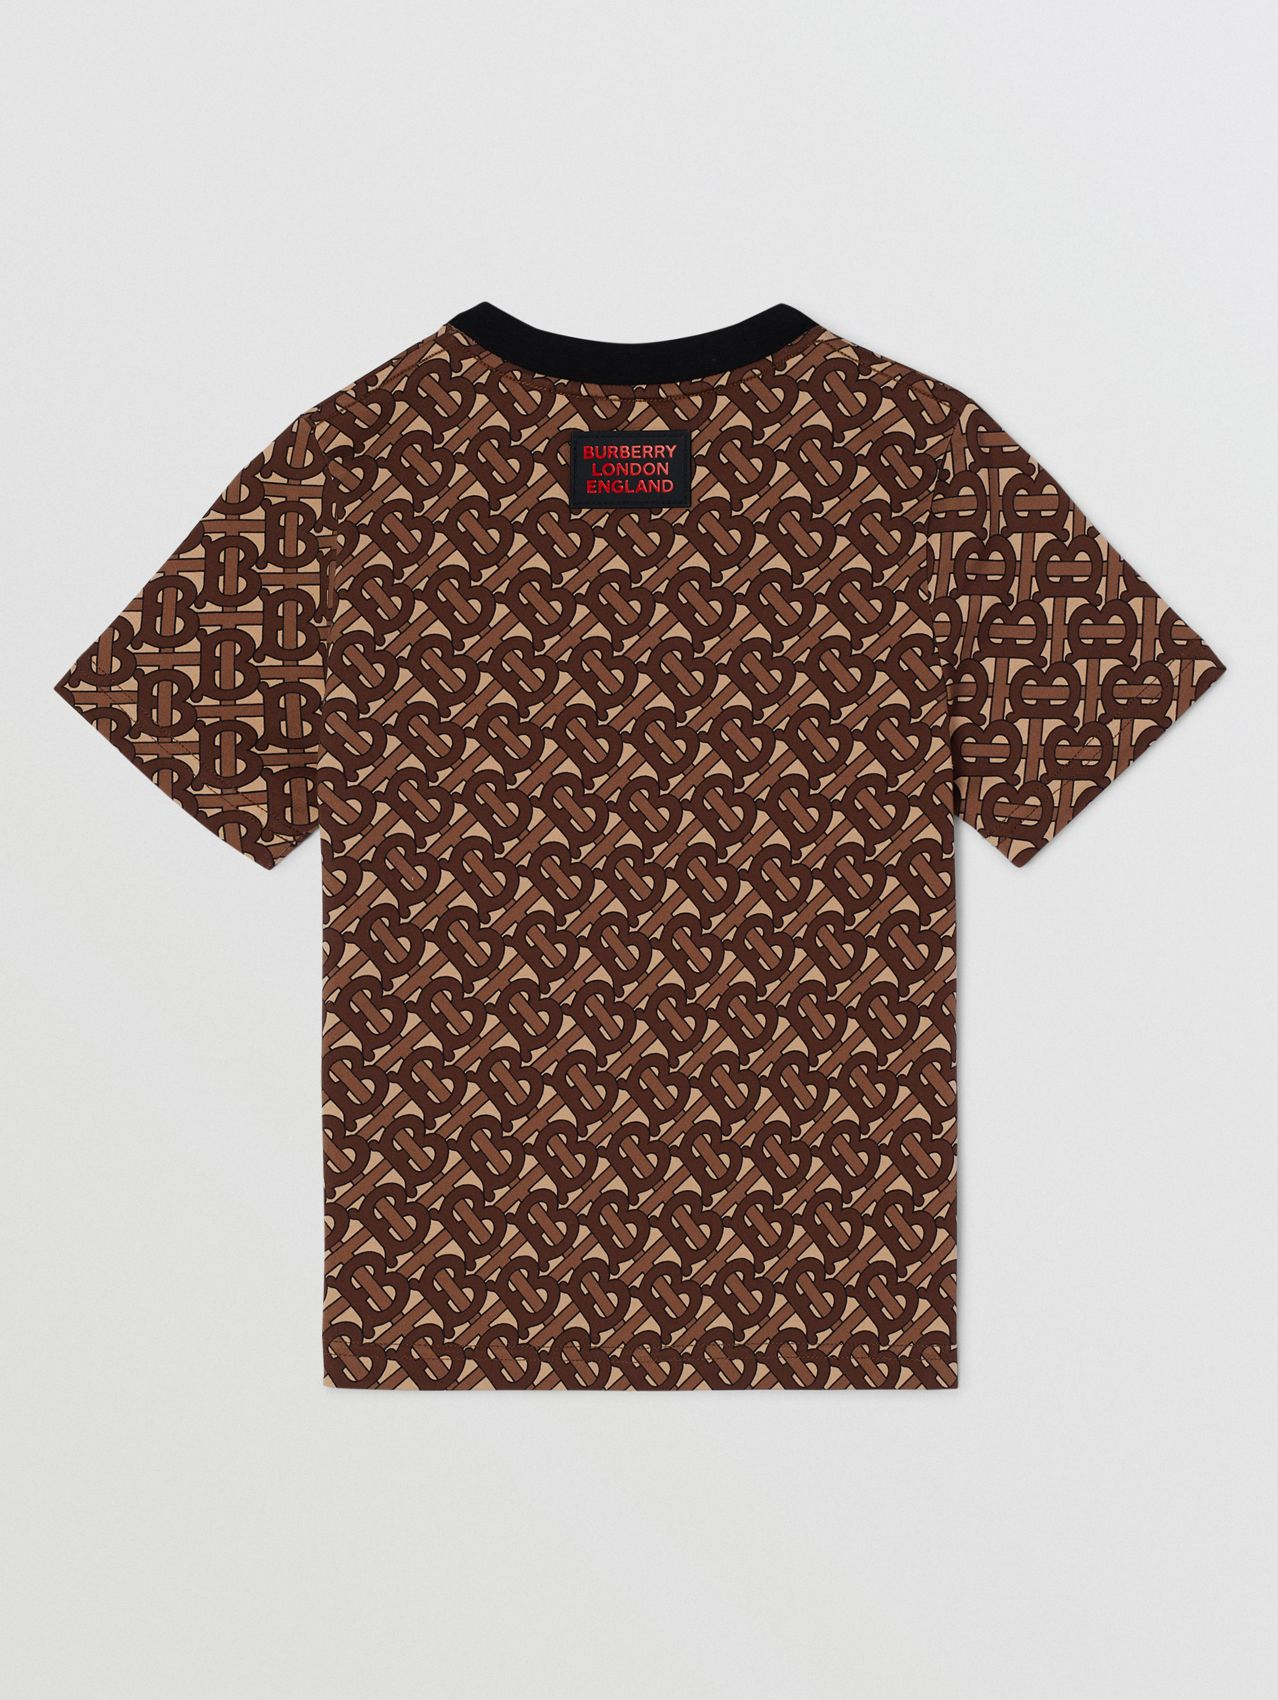 Monogram Stripe Print Cotton T-shirt (Bridle Brown)